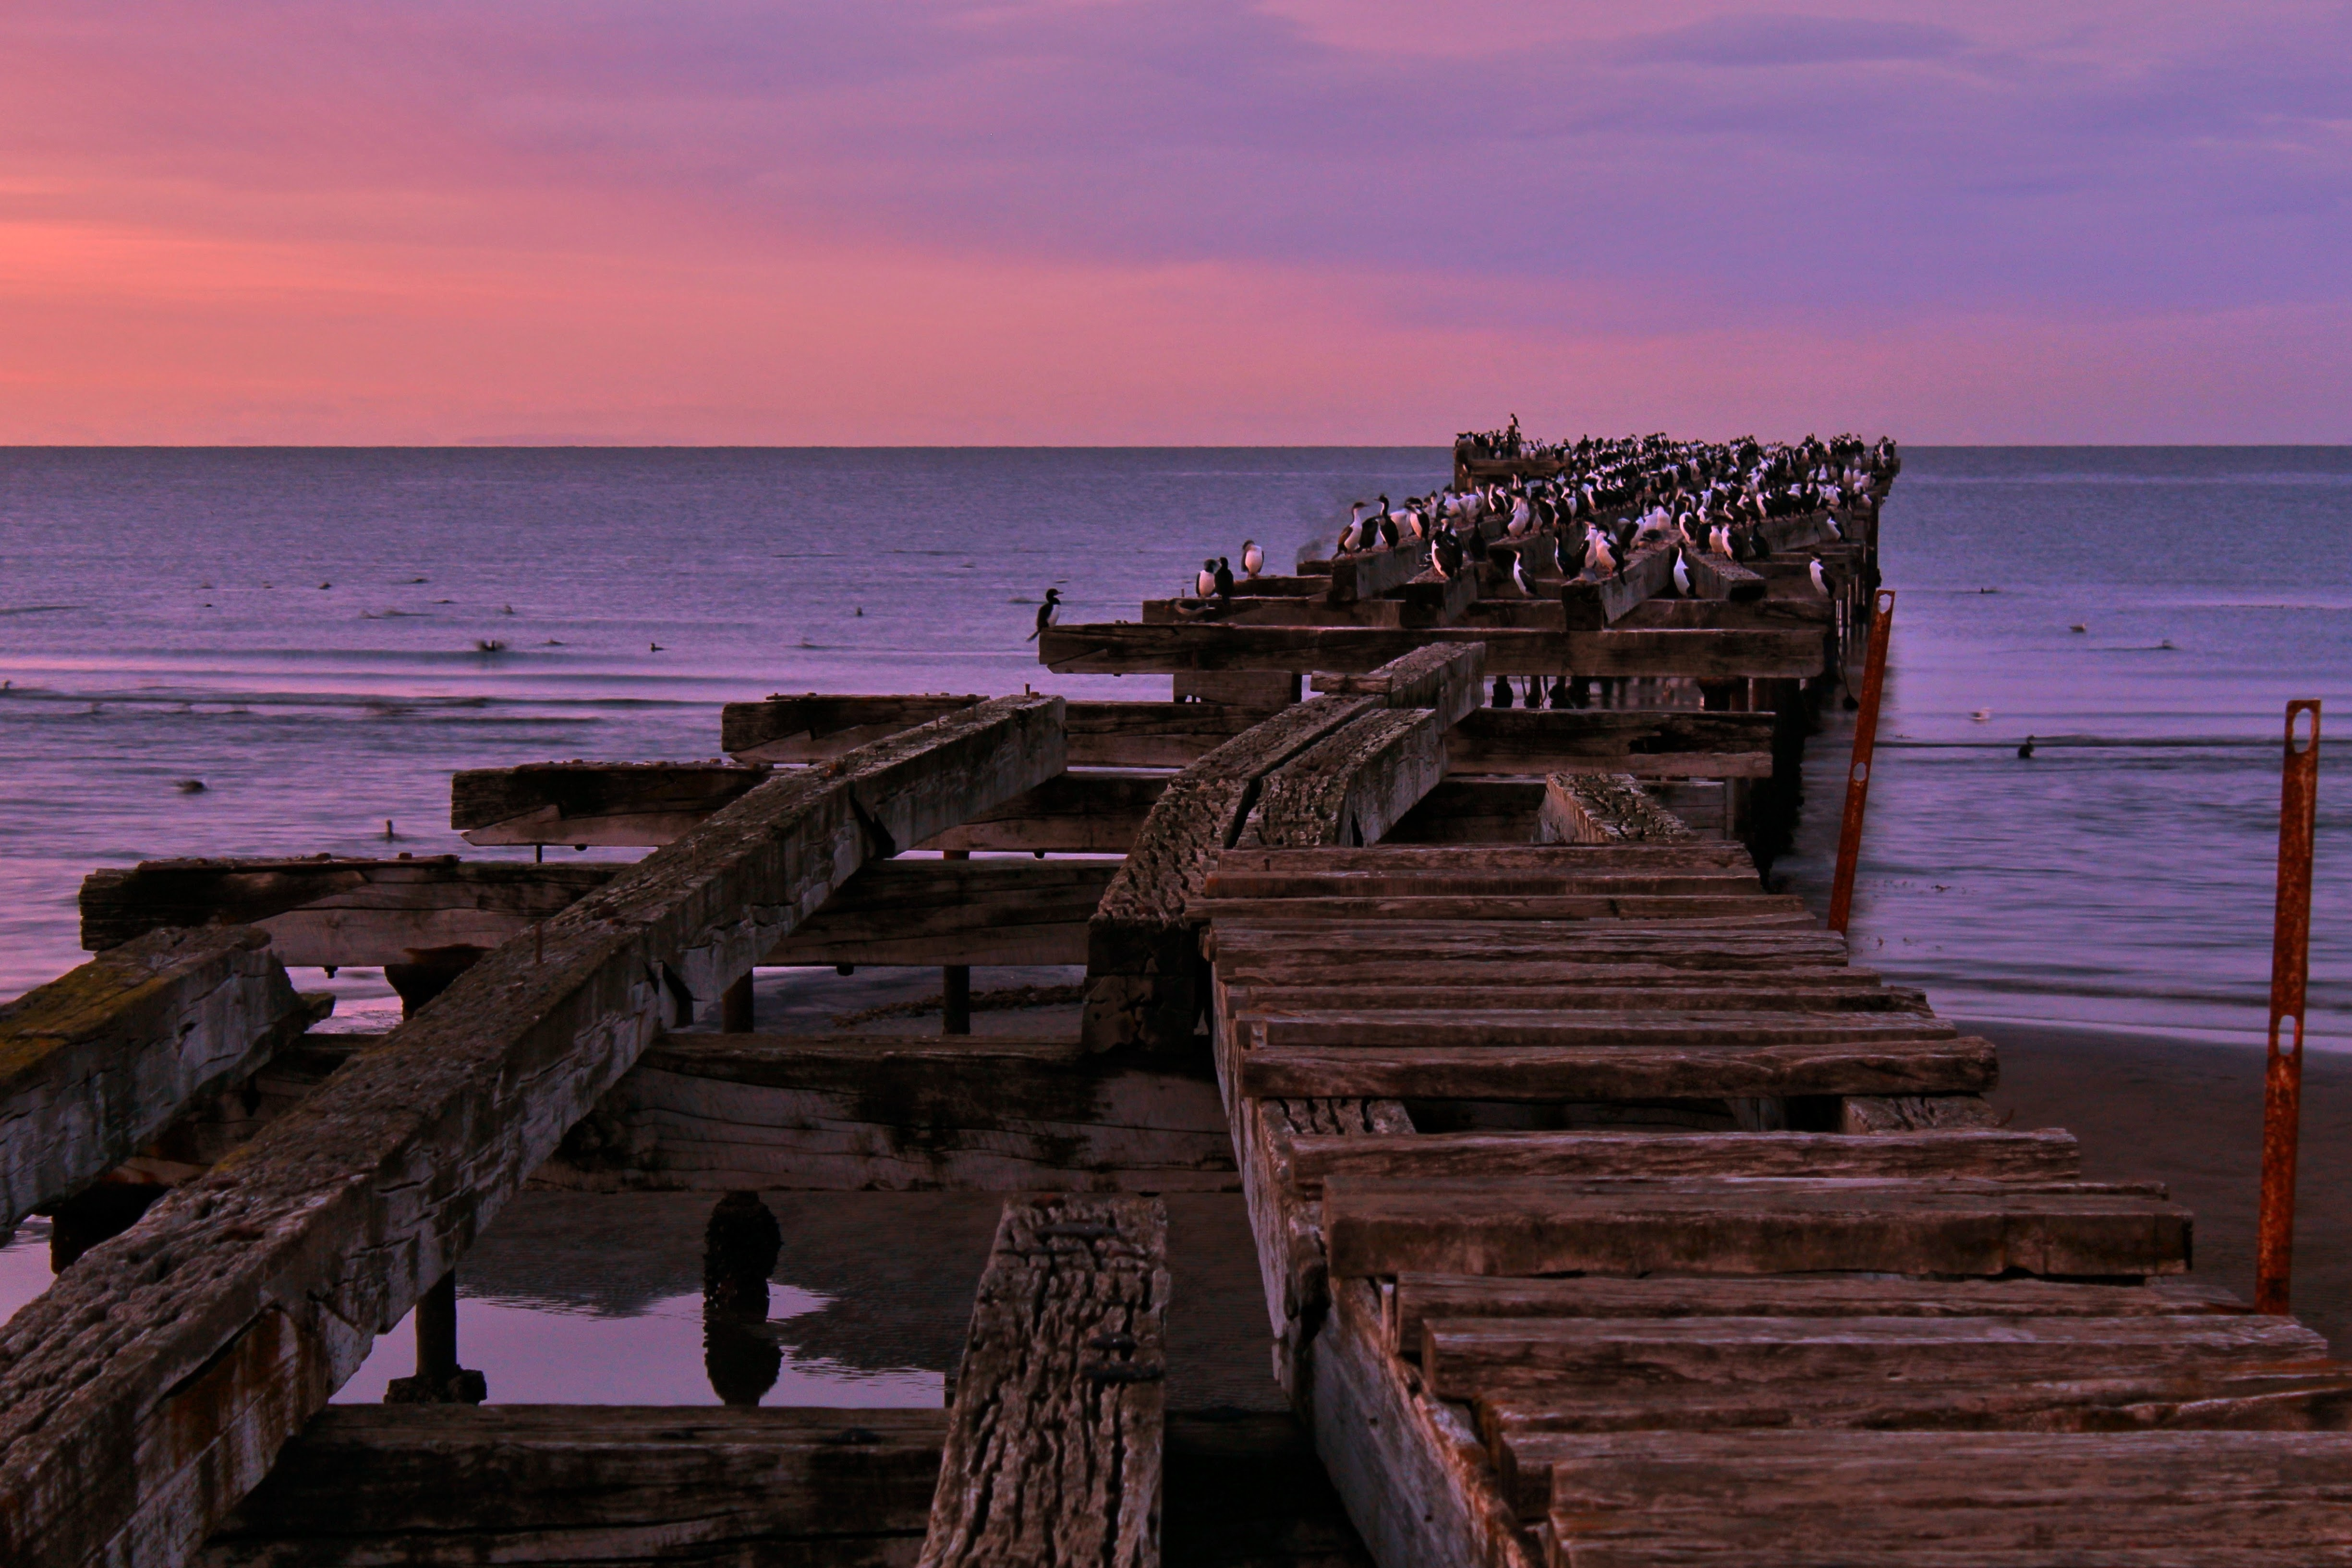 Two weeks in Chile - Punta Arenas